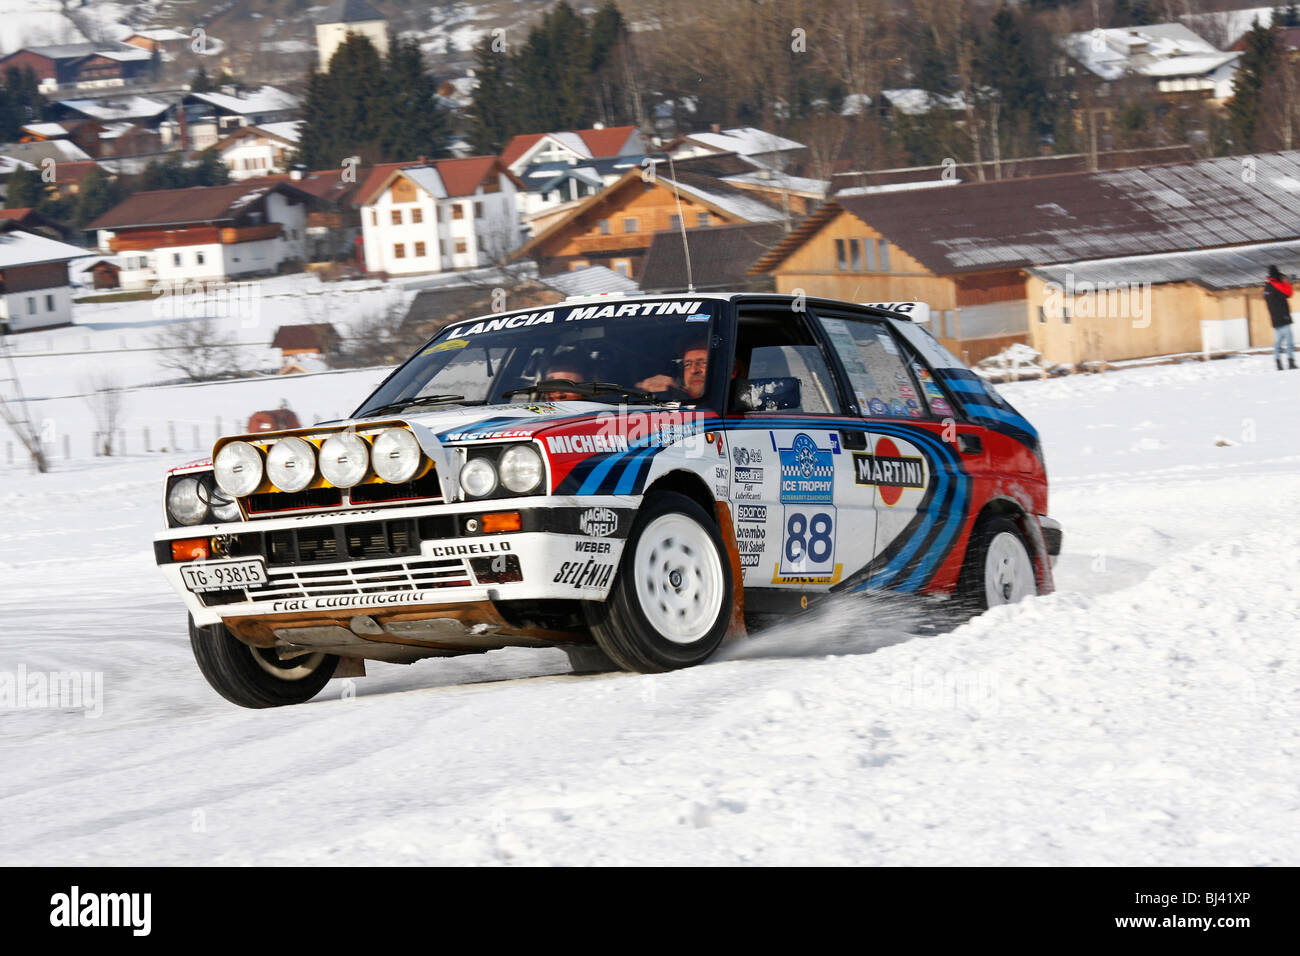 Lancia Delta Integrale Martini, former World Rally Championship car ...